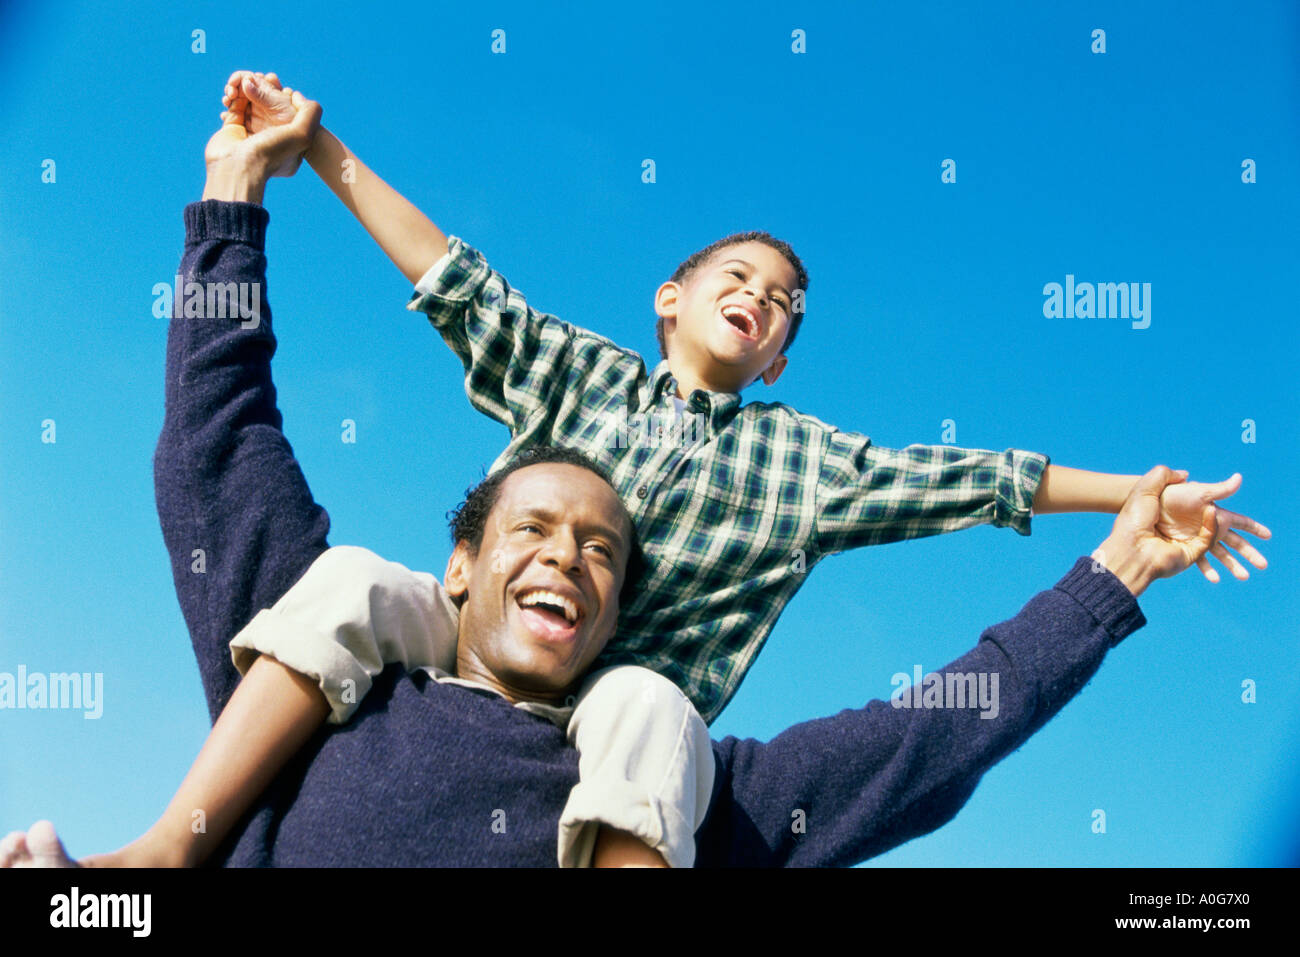 Low angle view of a father carrying his son on his shoulders - Stock Image